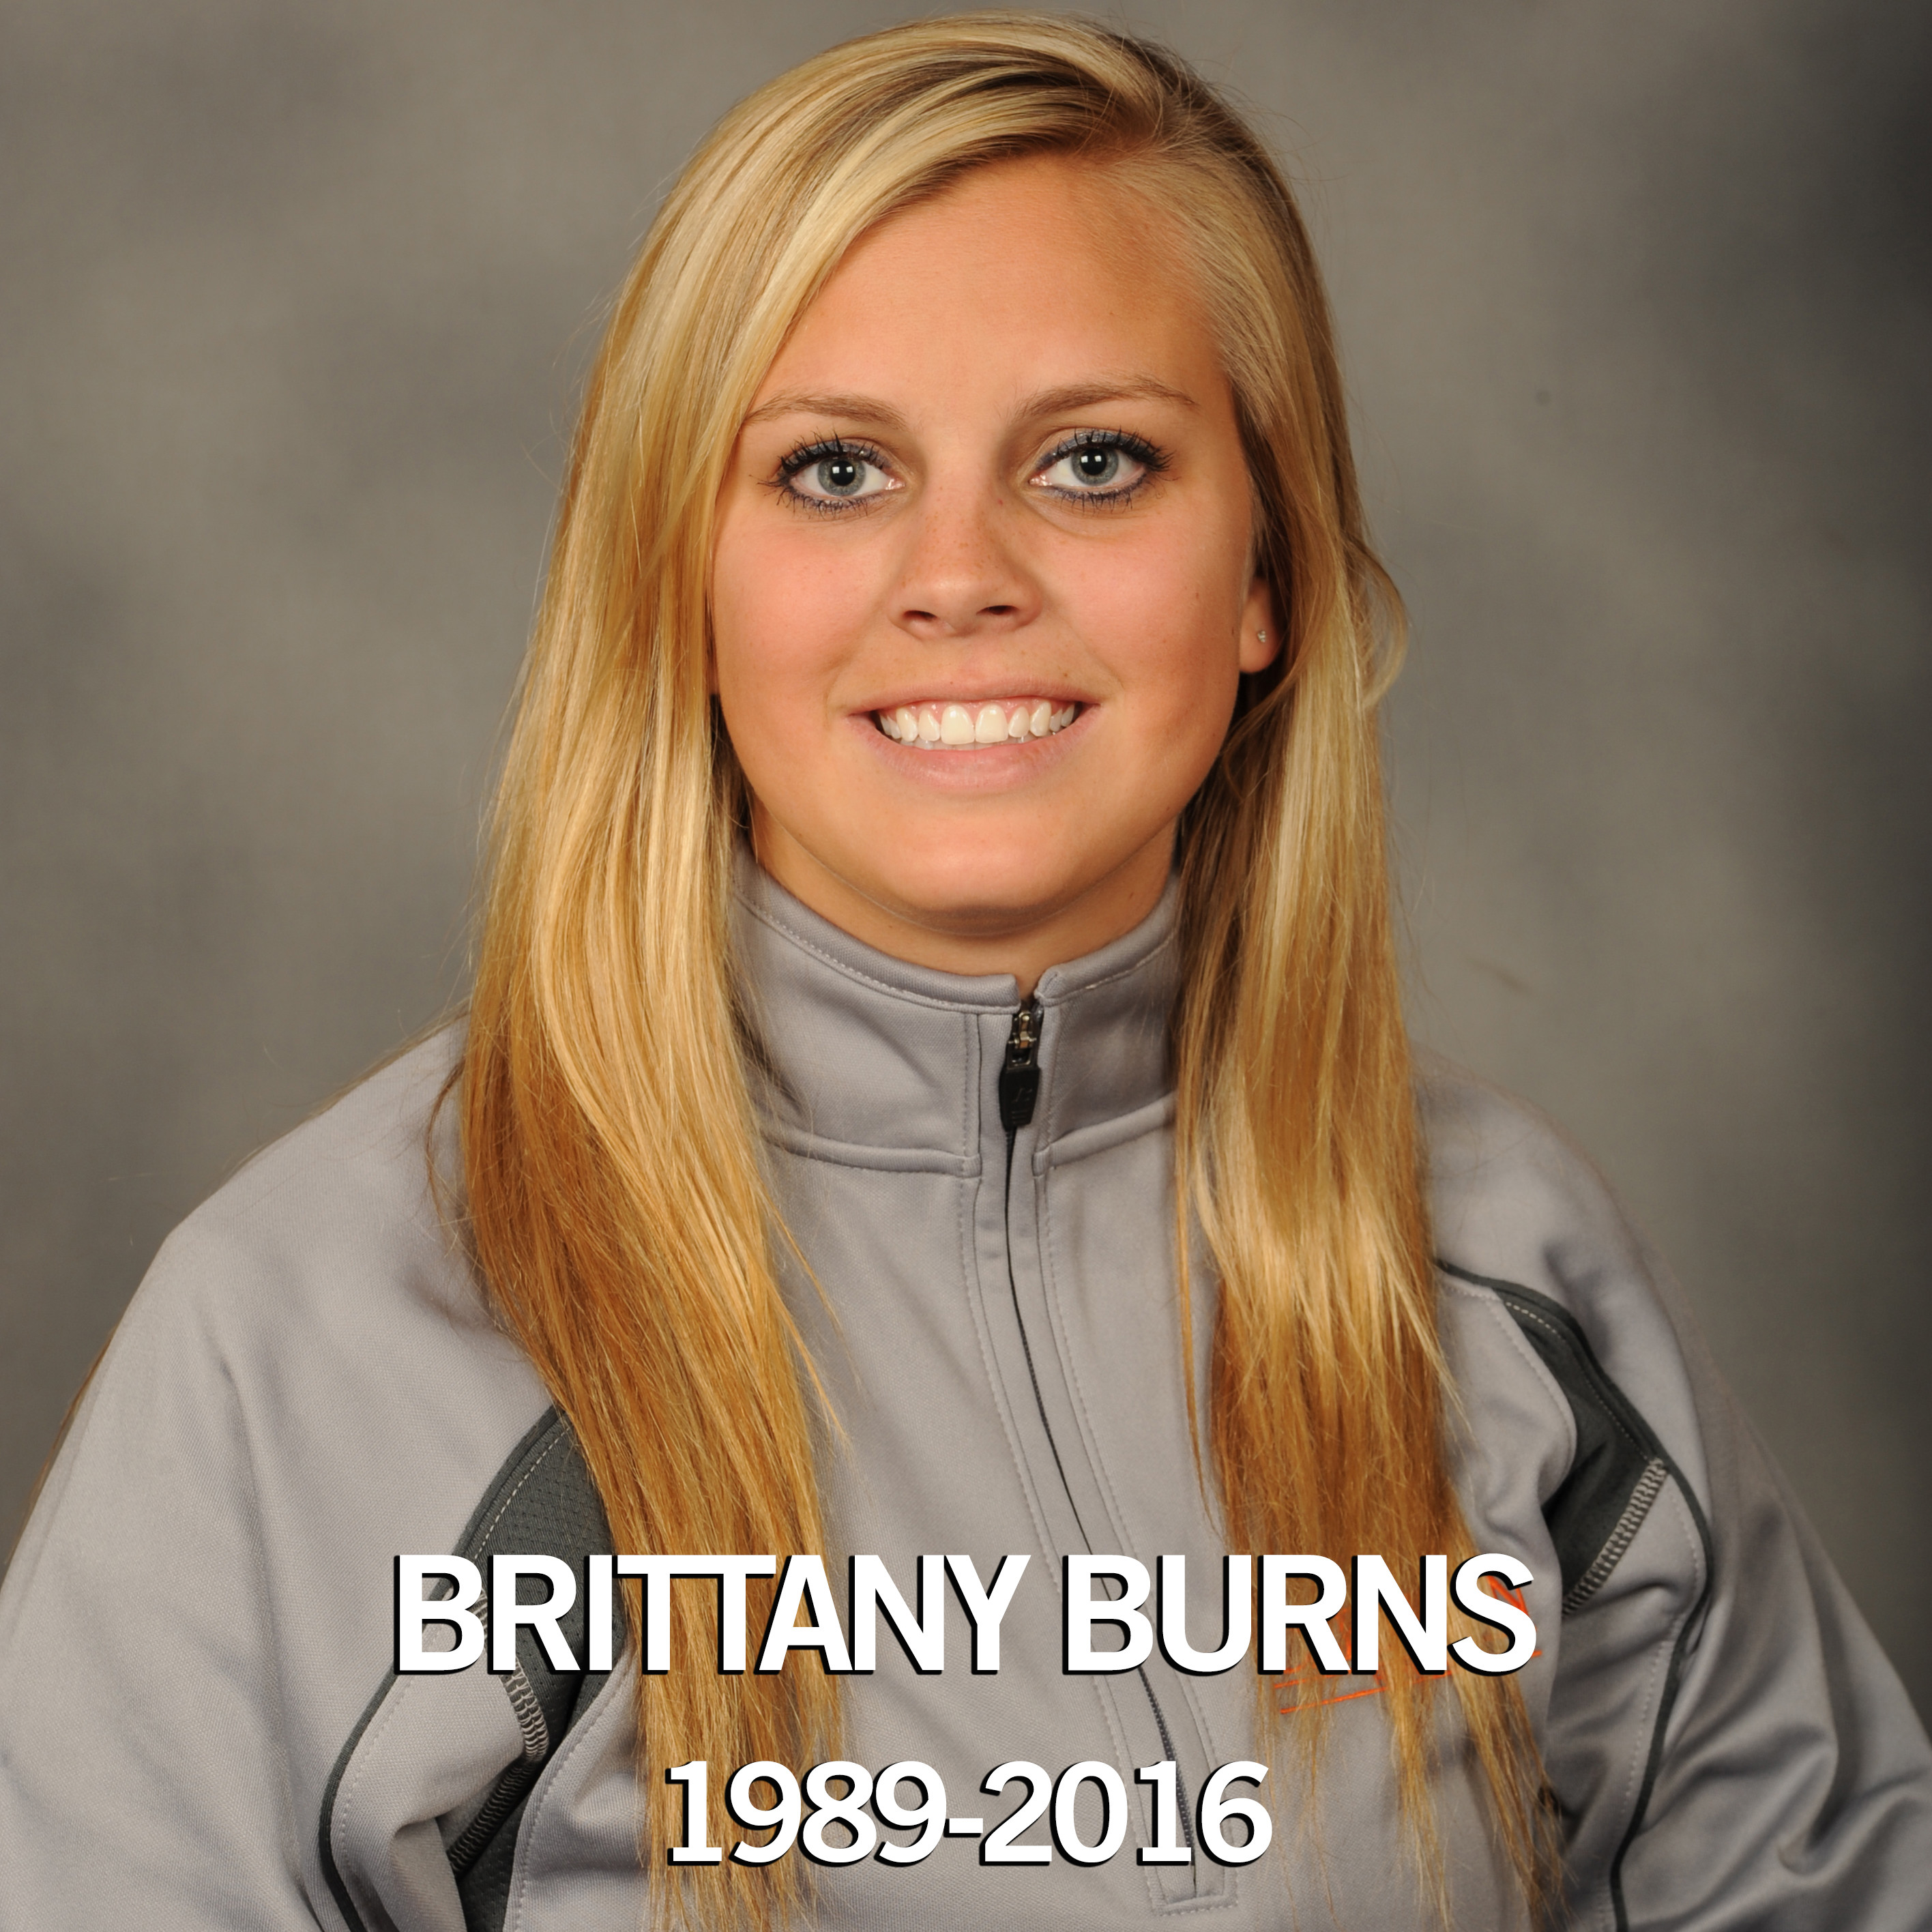 Brittany Burns (1989-2016) Remembered